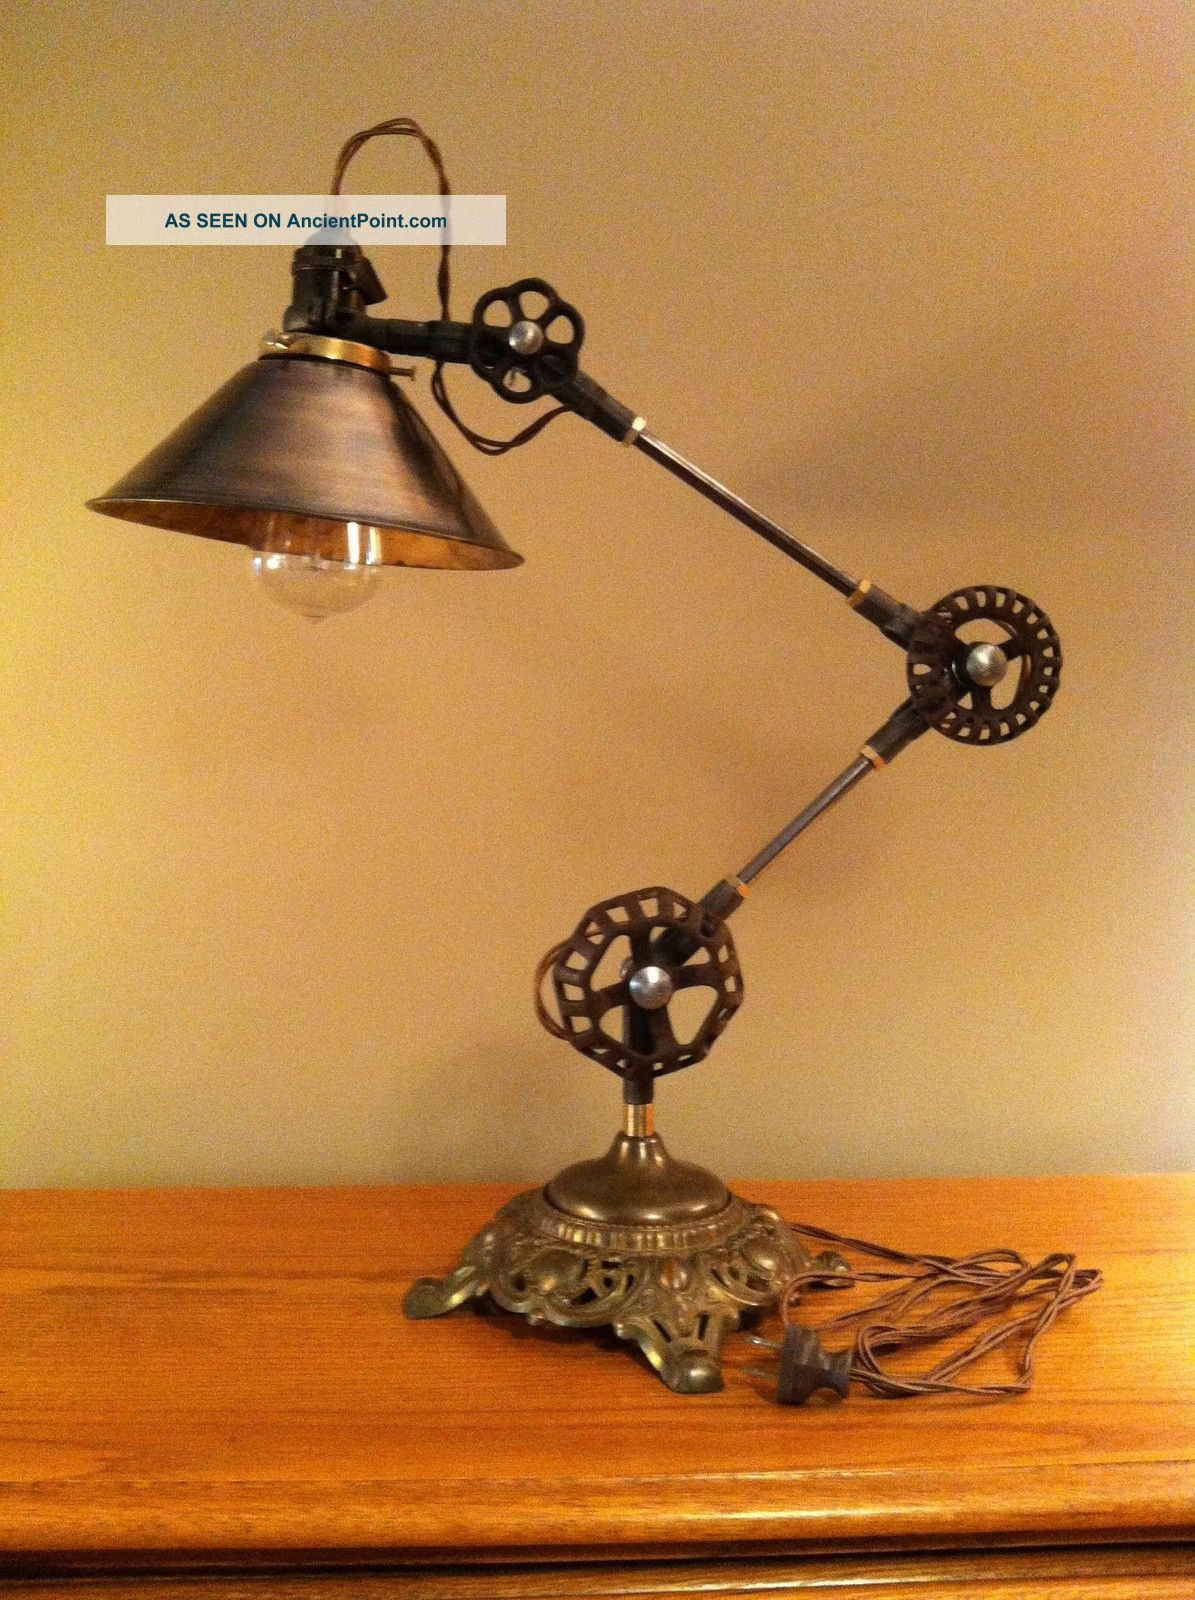 Vintage Industrial Desk Lamp - Machine Age Task Light - Cast Iron - Steampunk Lamps photo